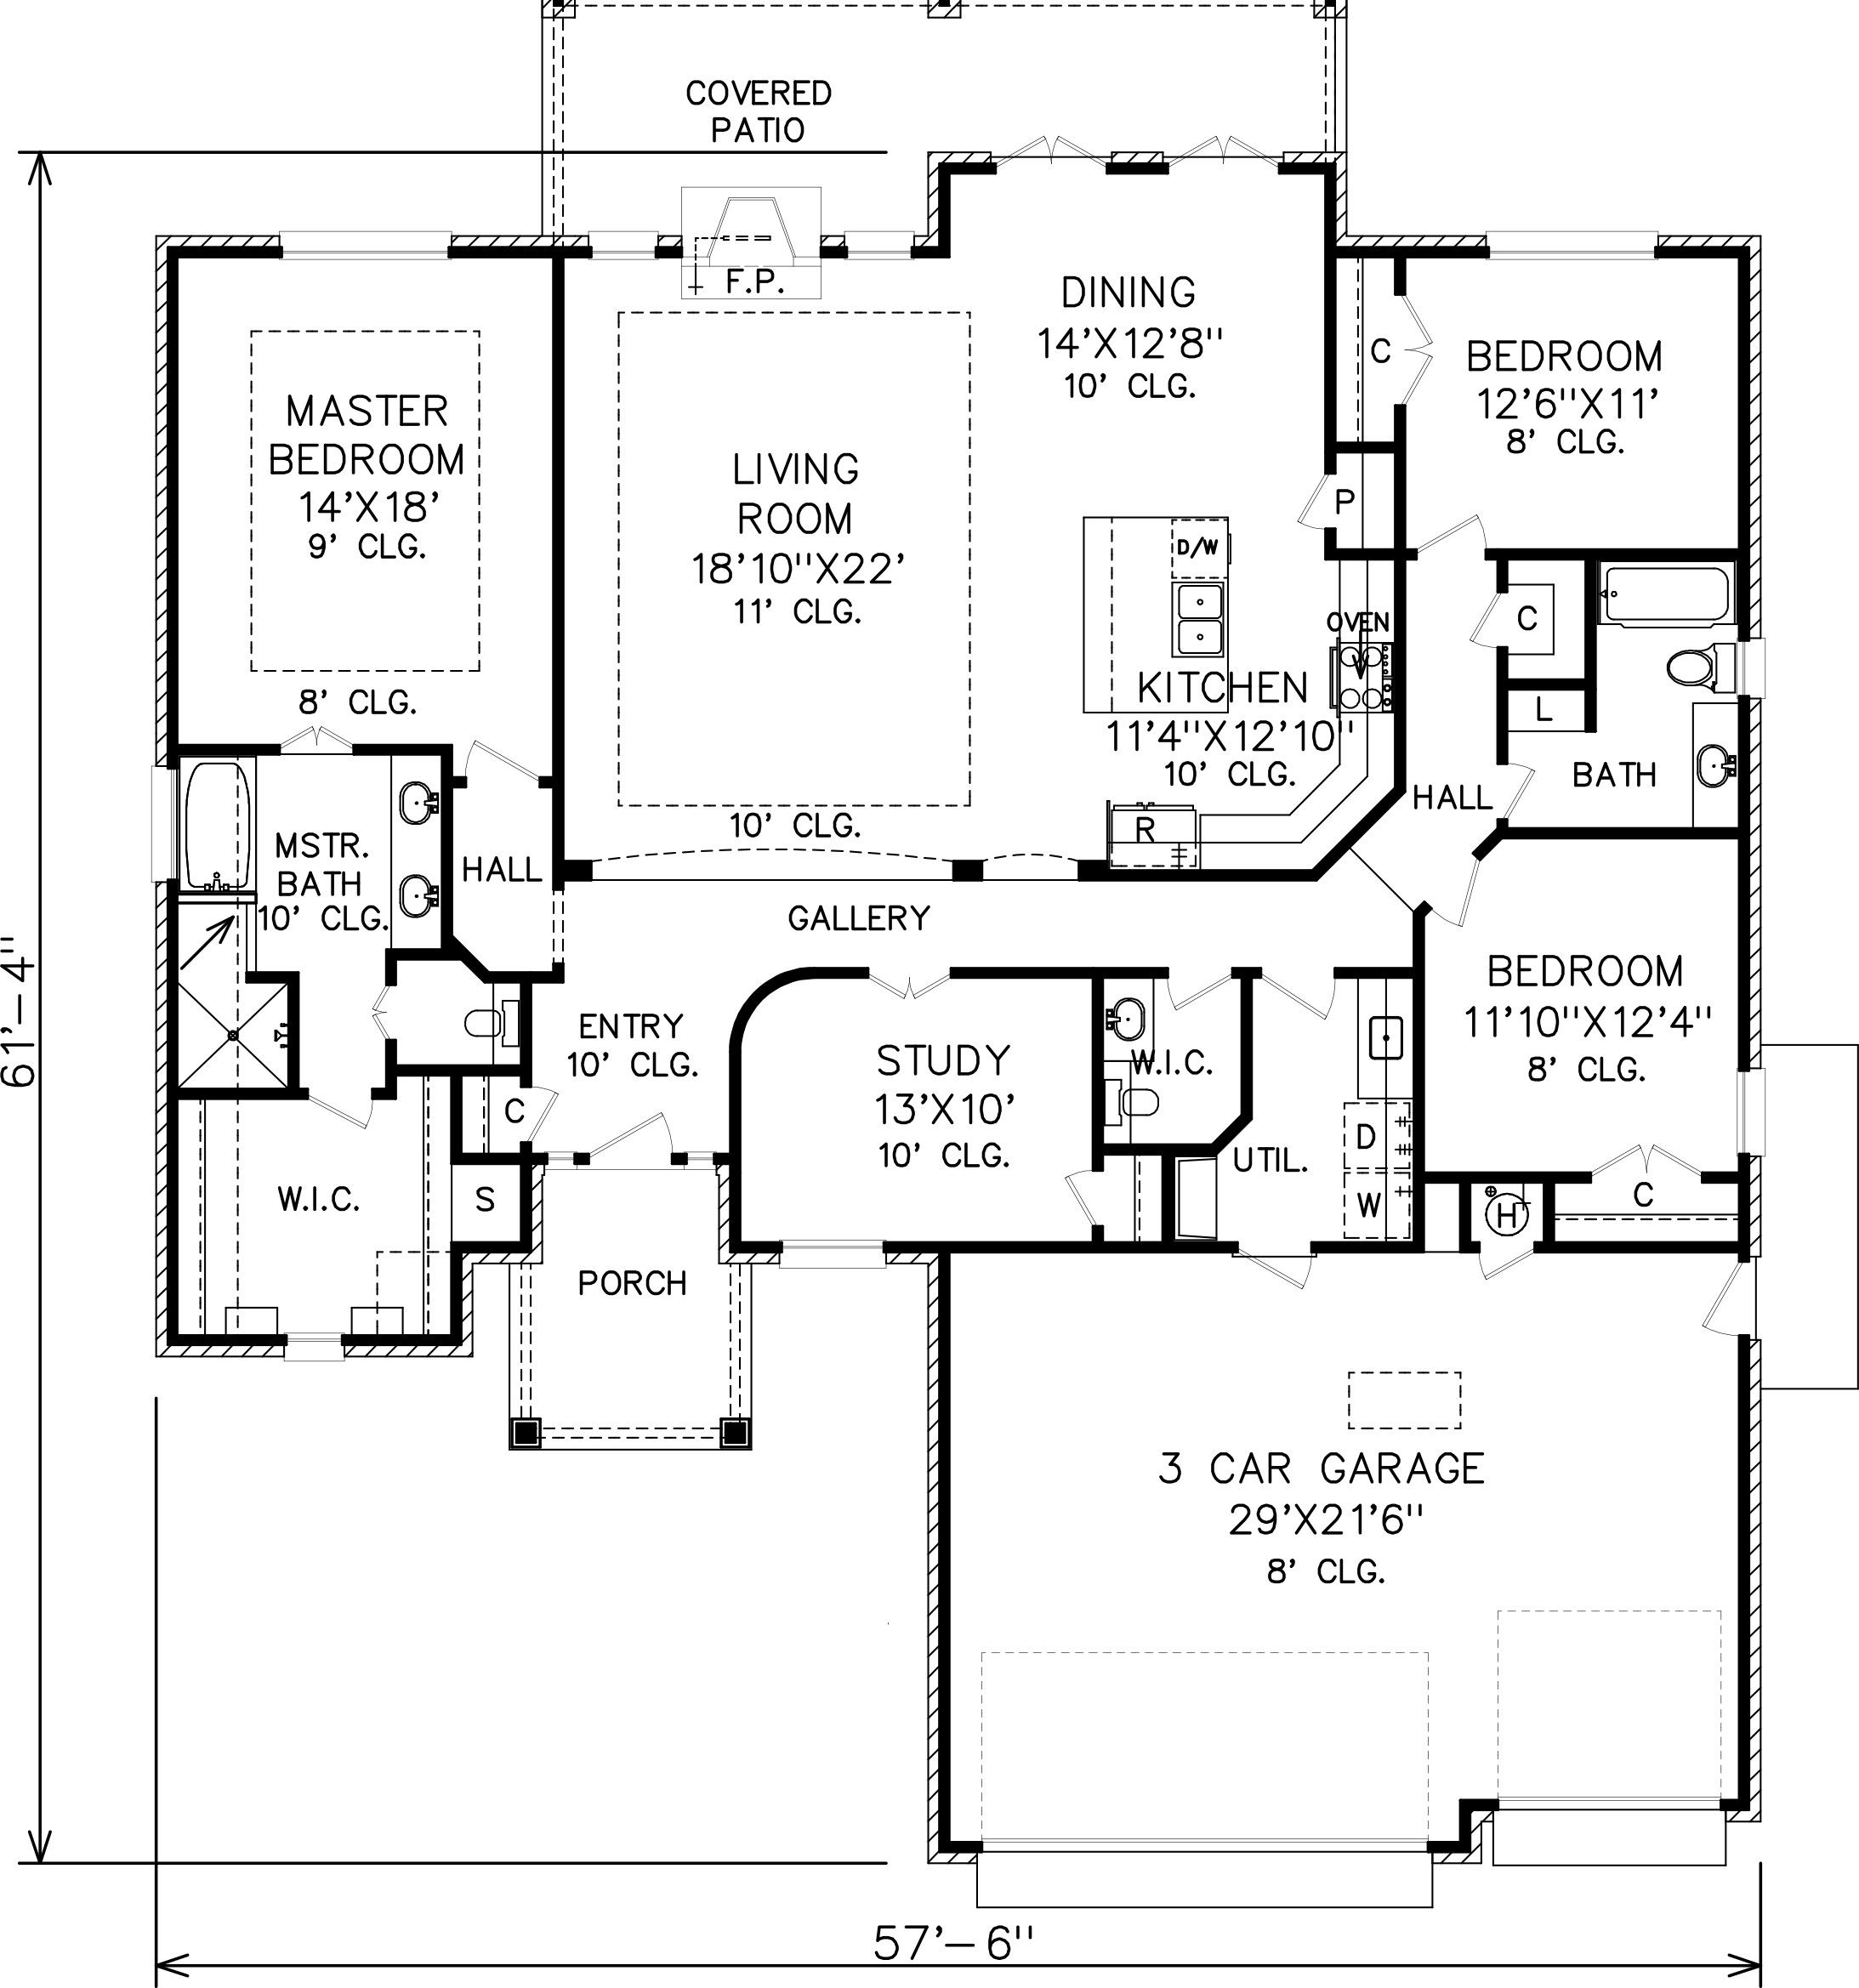 23 Inspirational Small House Plans With Open Floor Plan Pics Barndominium Floor Plans Floor Plans Kitchen Floor Plans